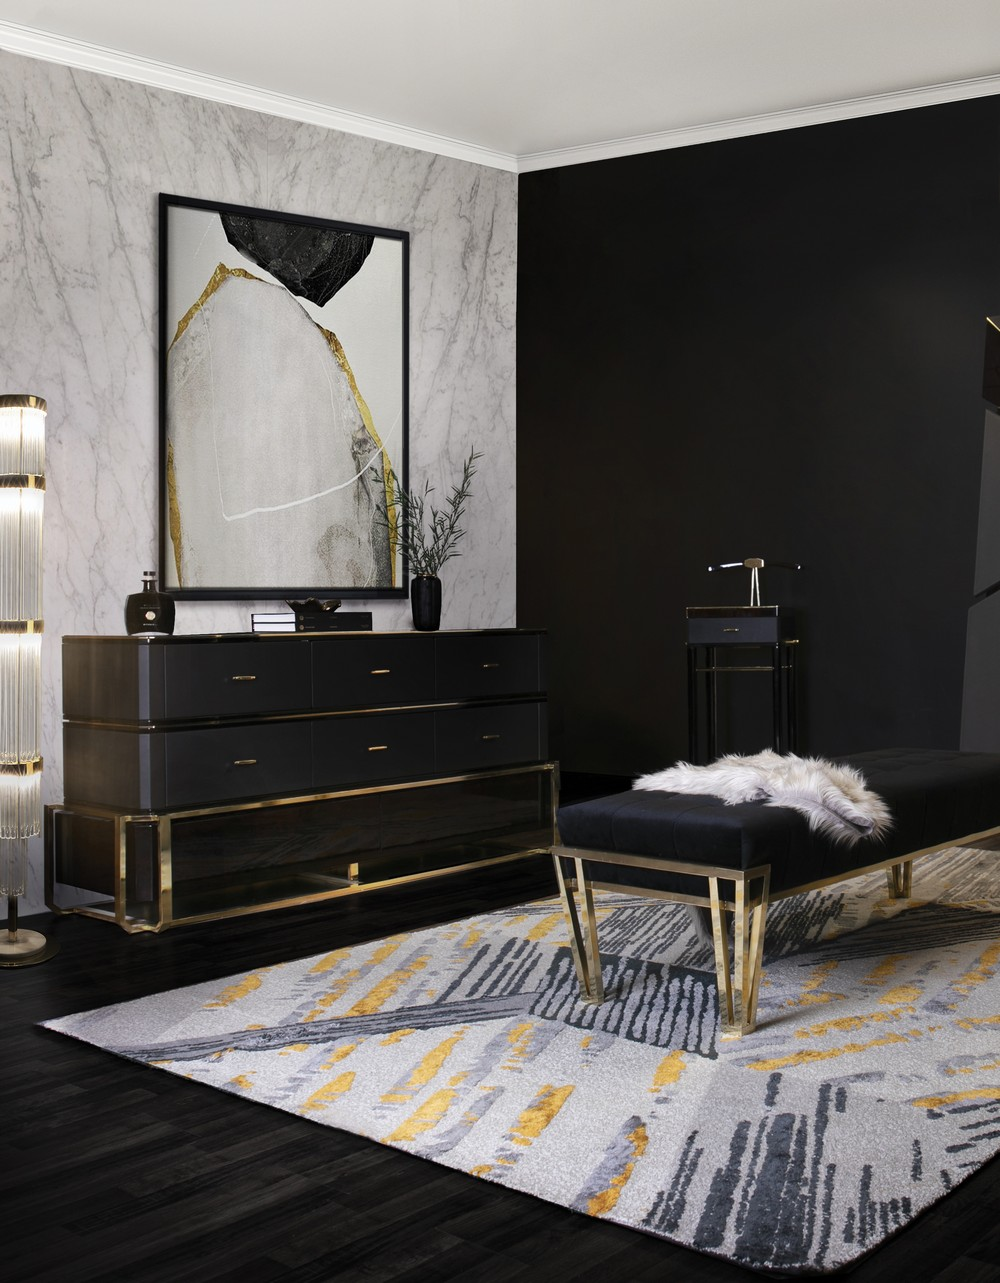 Interior Design Trends that Will Never Go Out of Style interior design trends Interior Design Trends that Will Never Go Out of Style Interior Design Trends that Will Never Go Out of Style